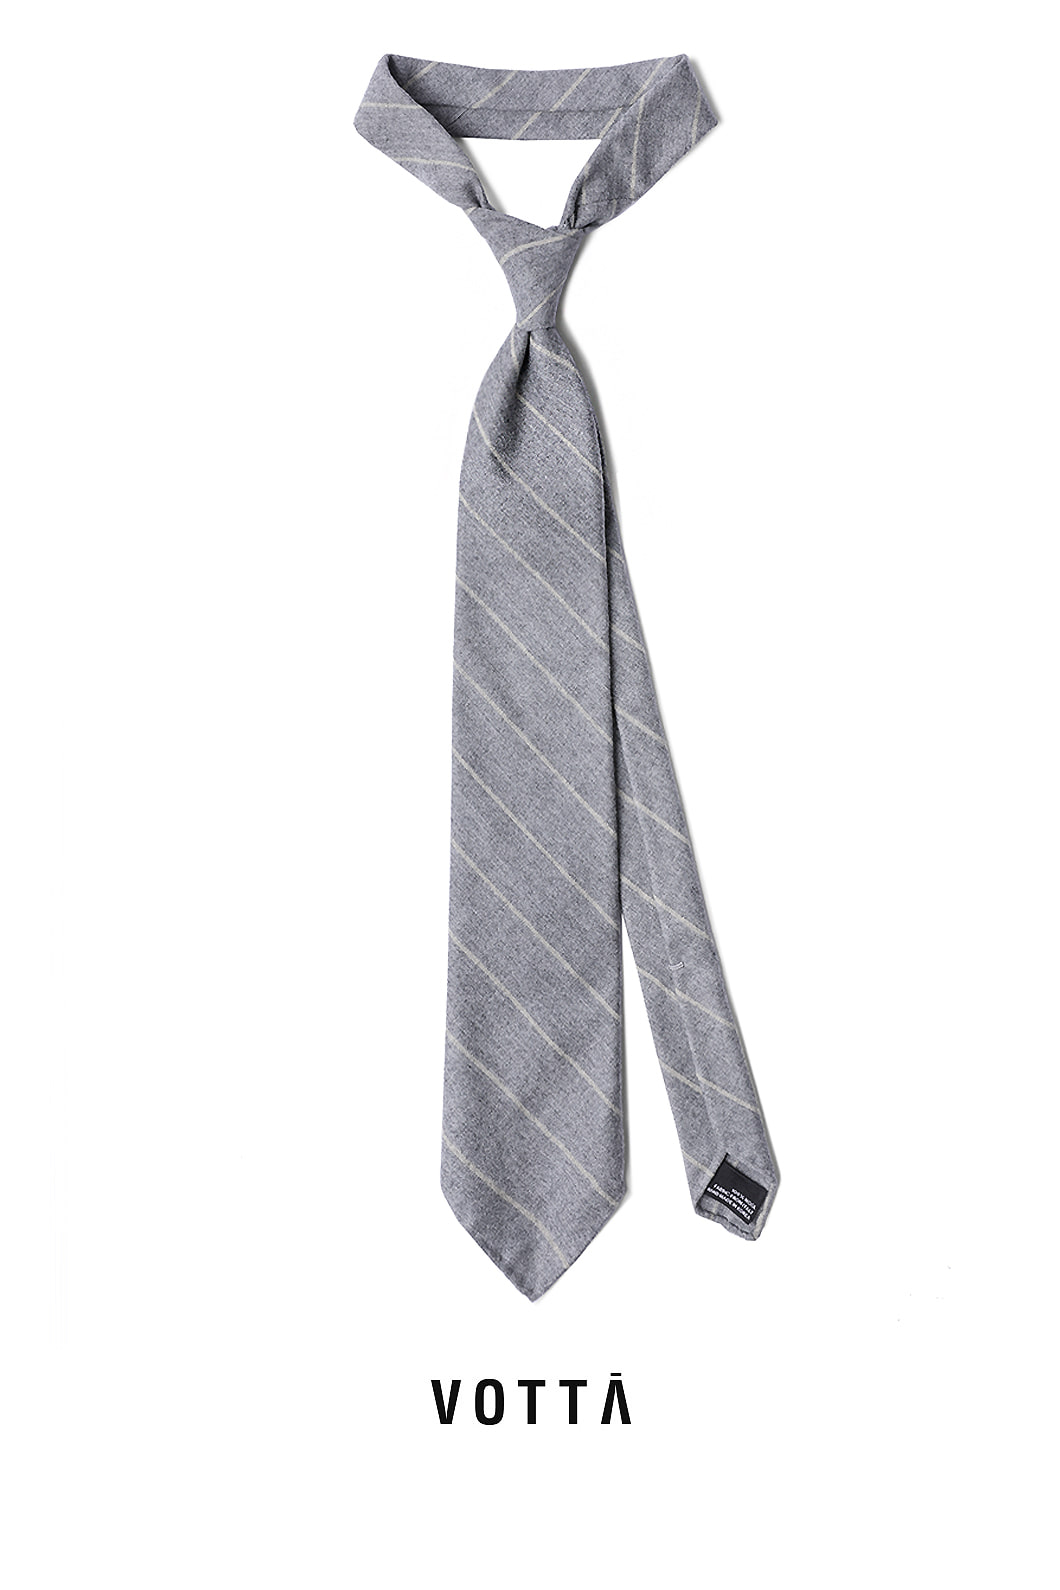 CANONICO STRIPE SPODERATO TIE-GRAY&YELLOWHAND MADE TIE[wool 100%]